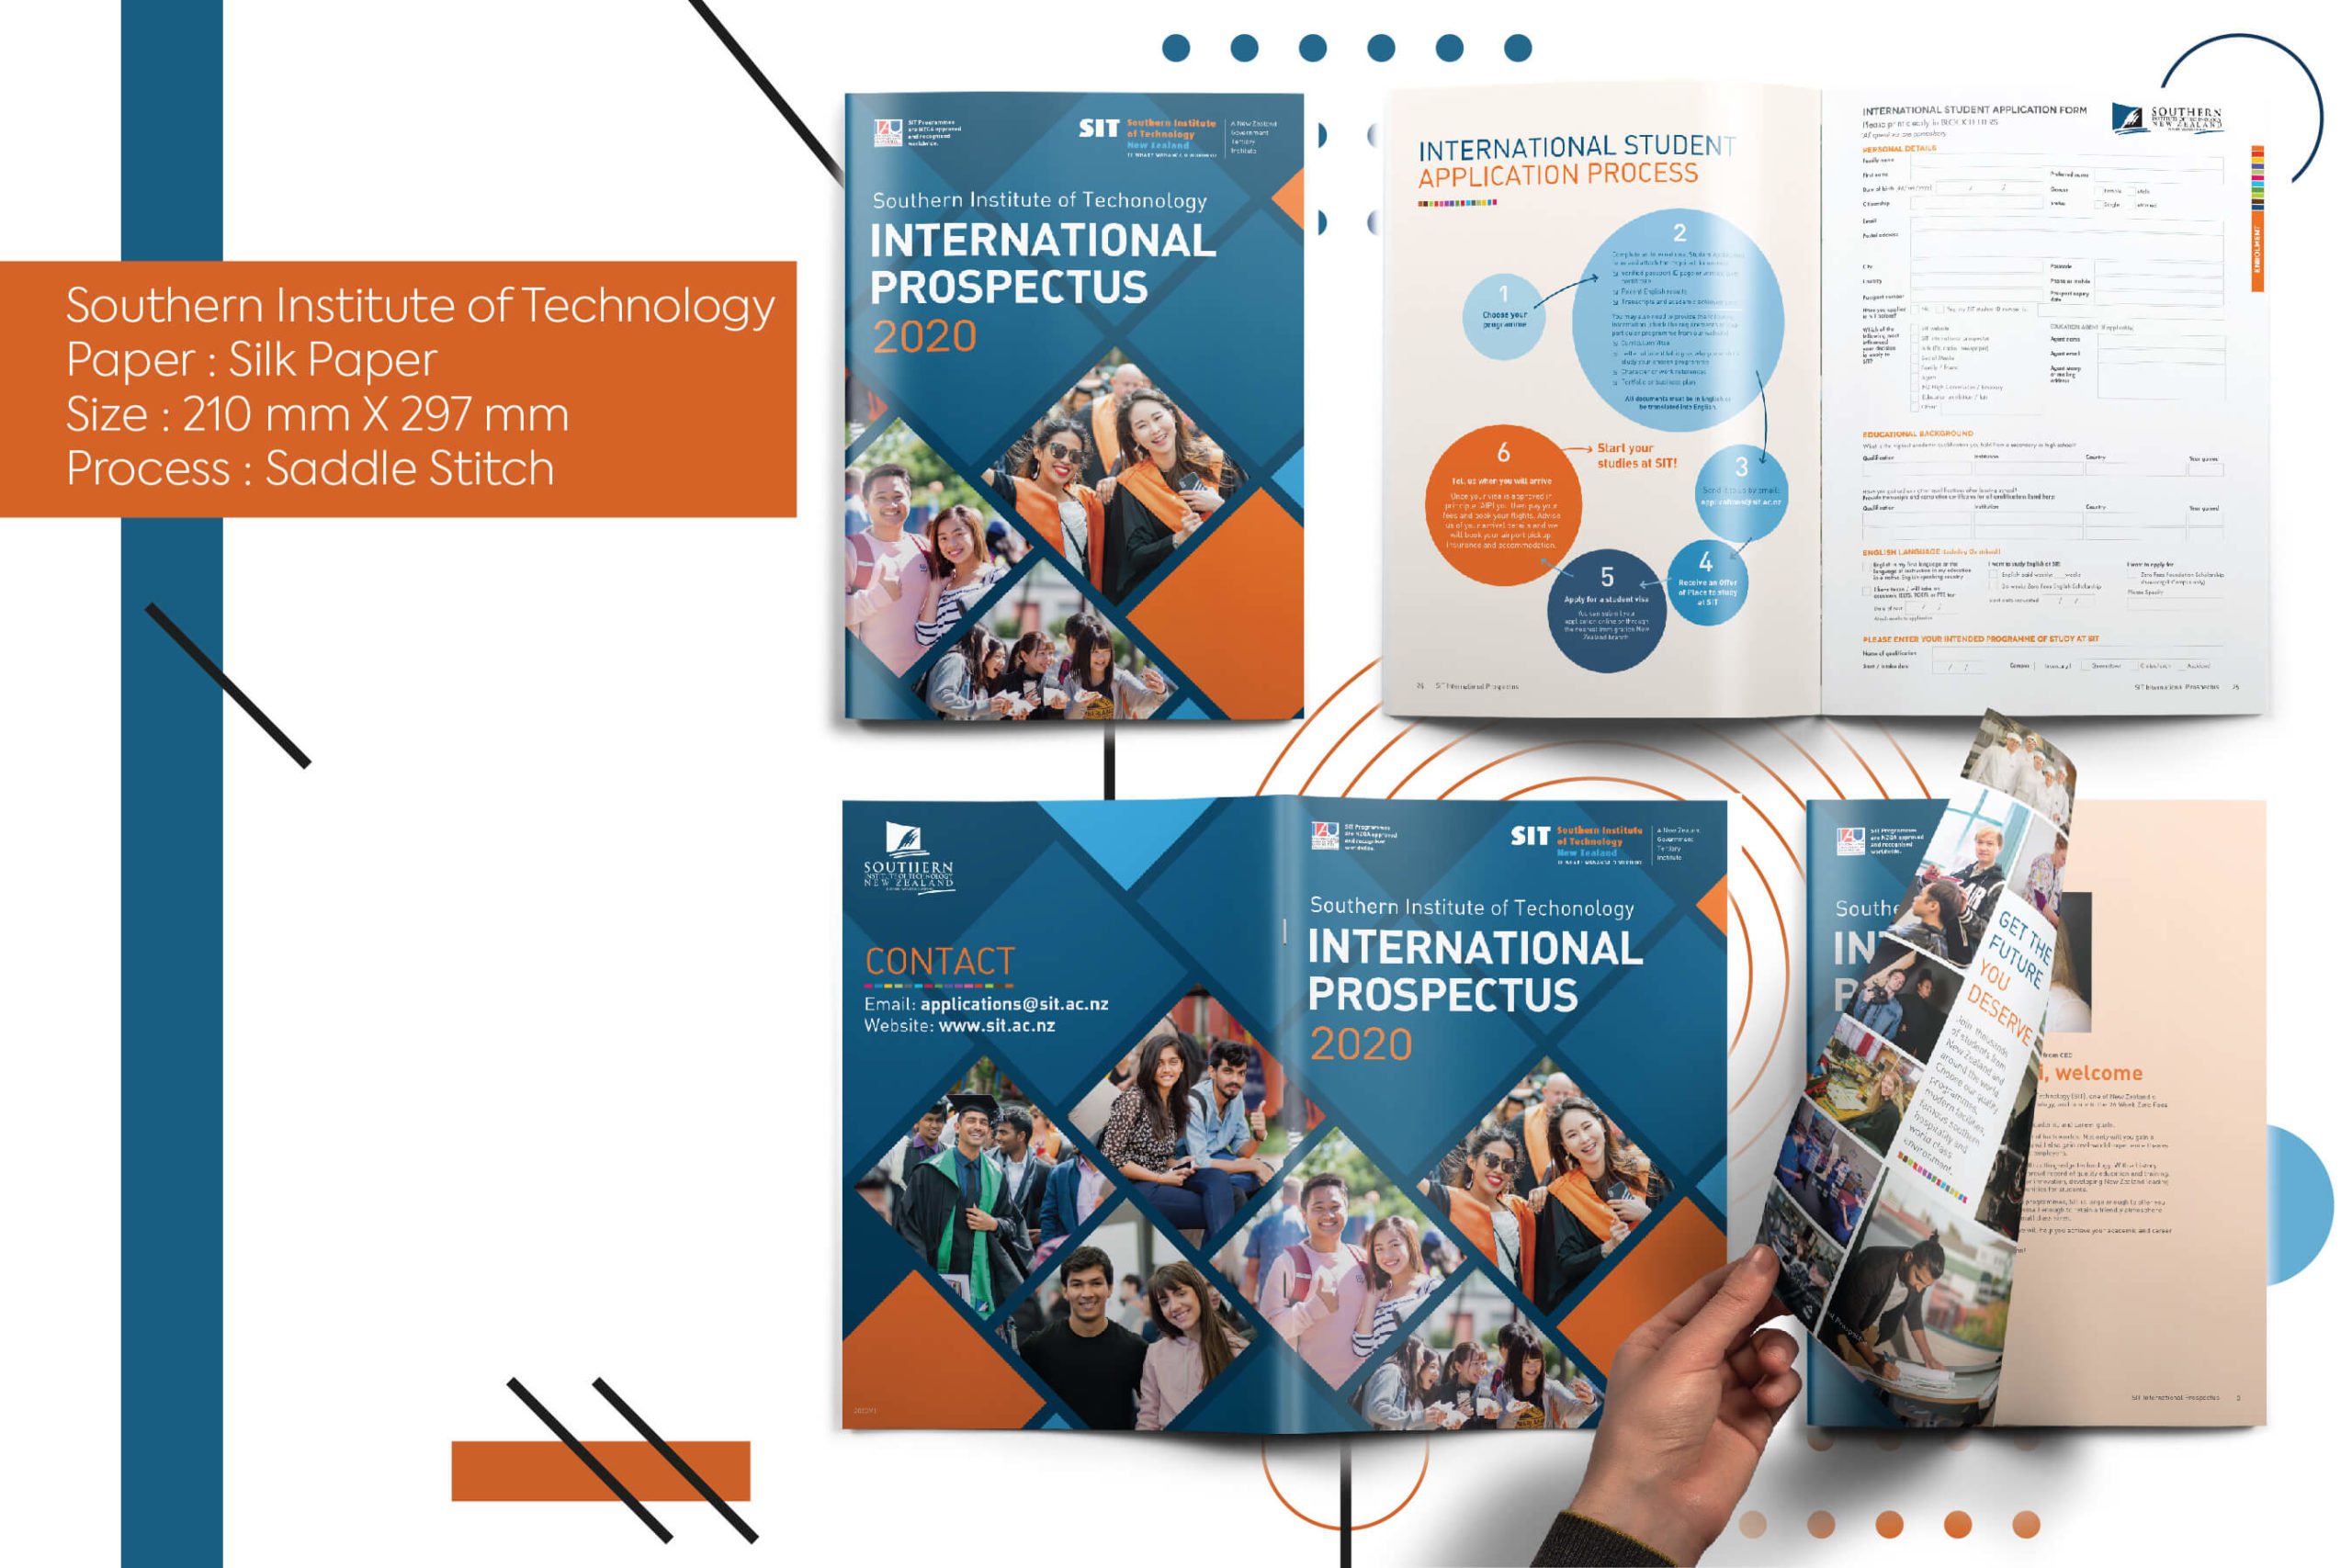 Southern institute of Technology,New Zealand, printing, brochure, global shipping,